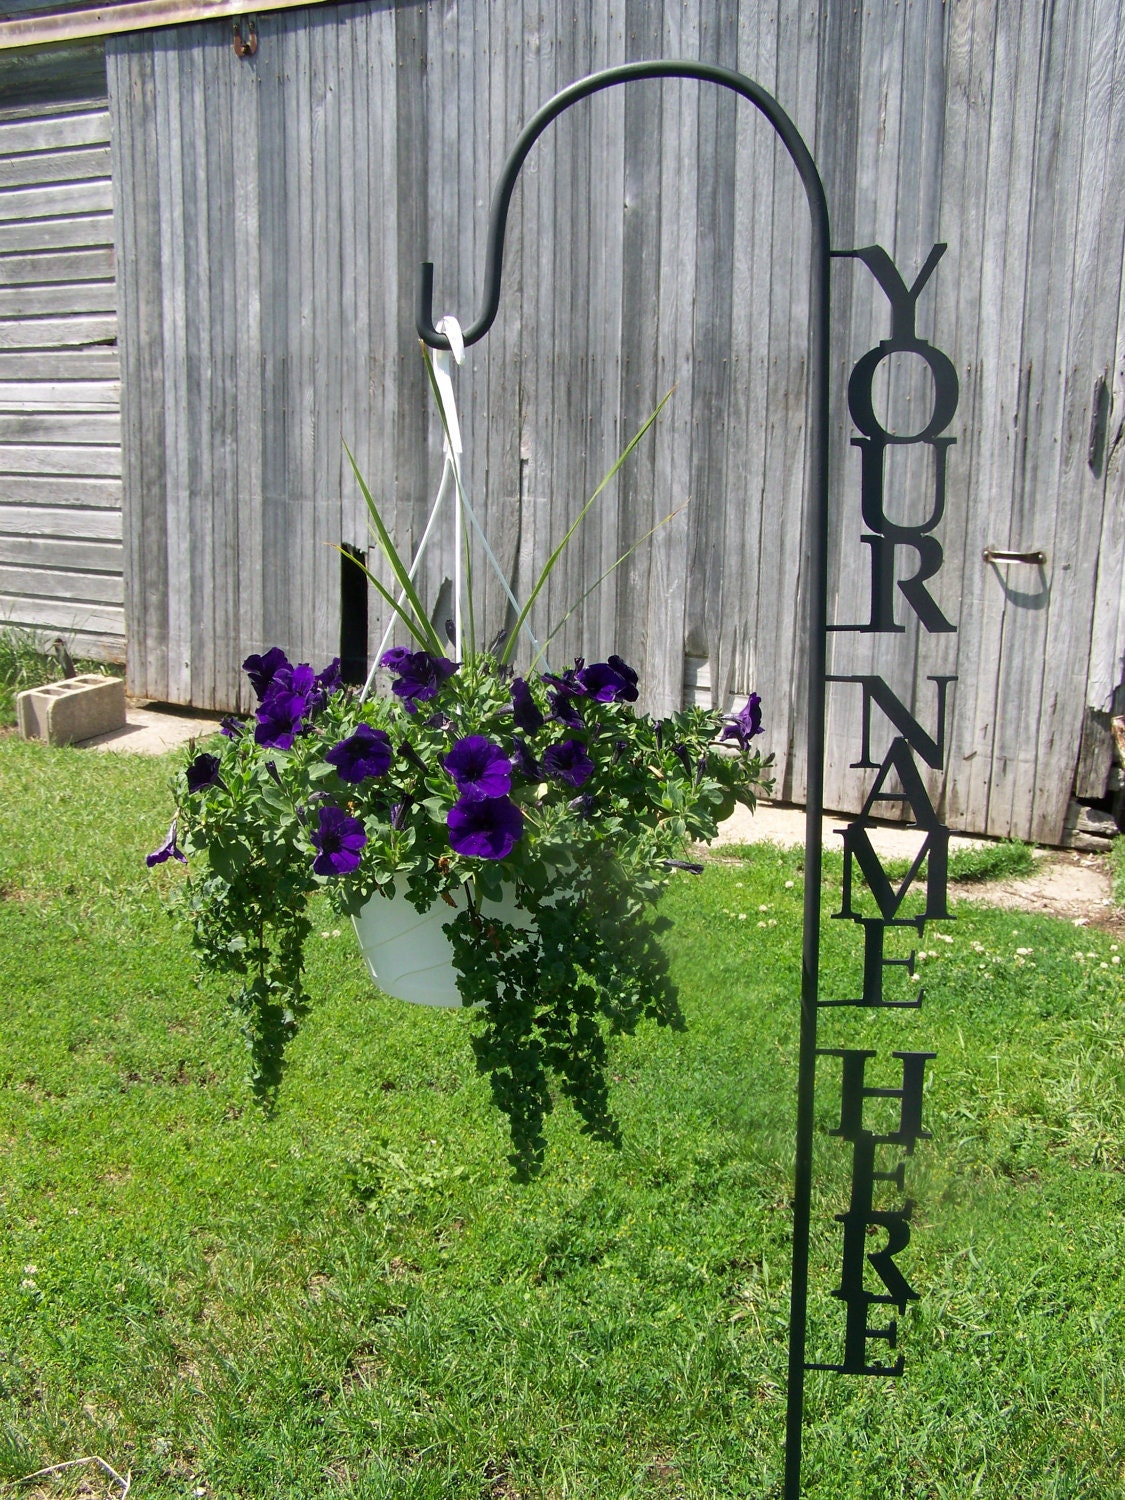 shepherd hook personalized with your name yard garden decor art plant holder hook - Yard Decor